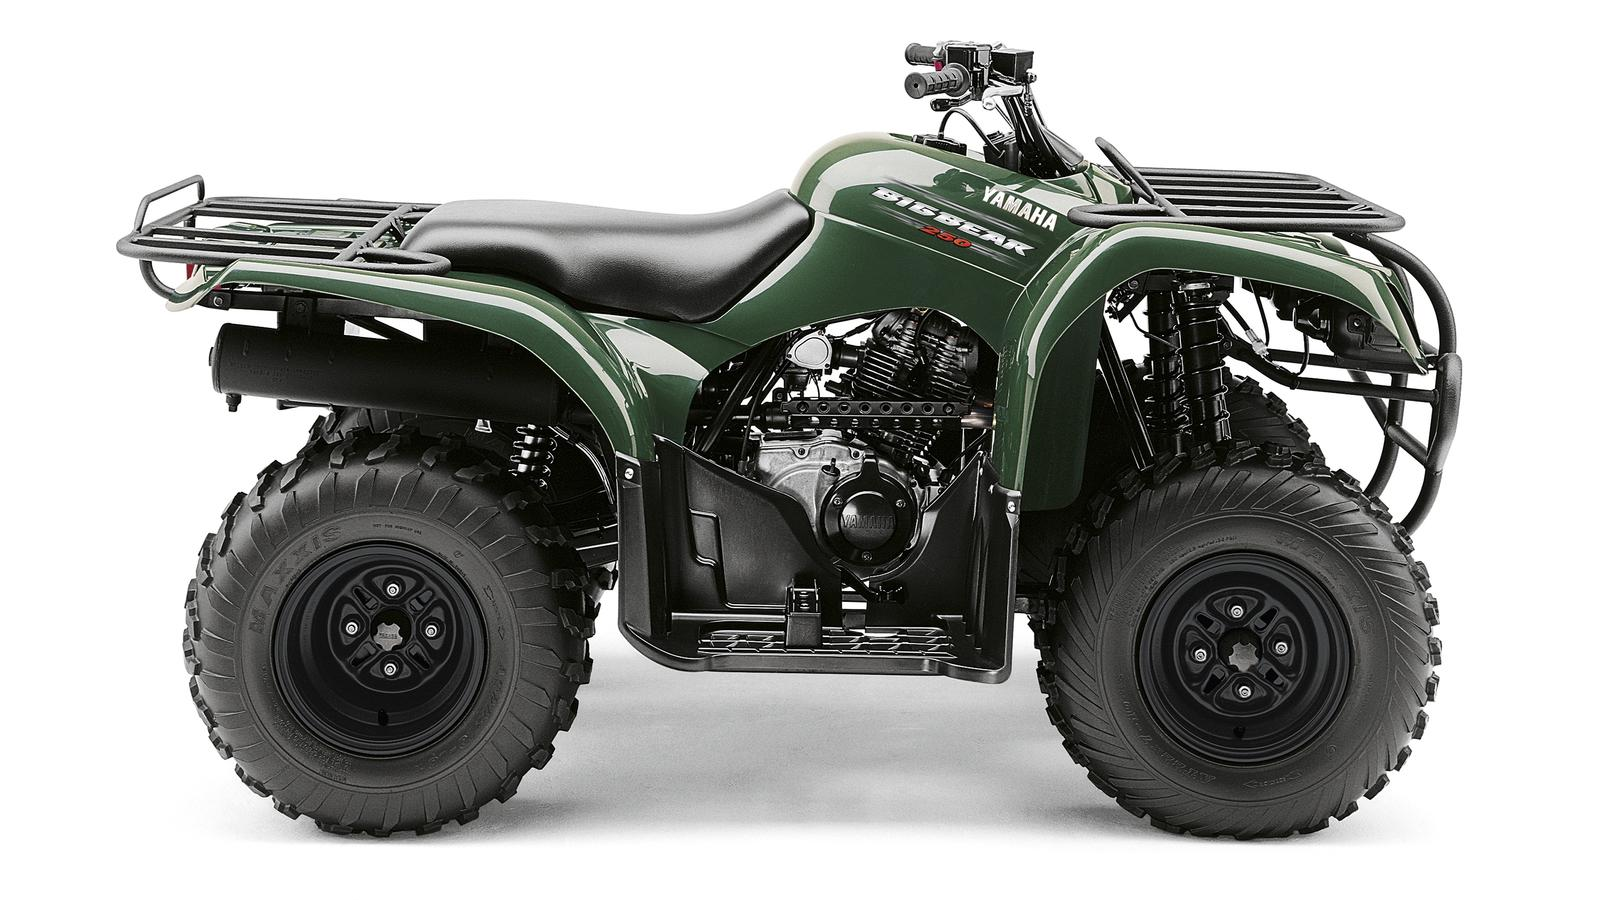 YAMAHA Big Bear 250  2011 photo 2